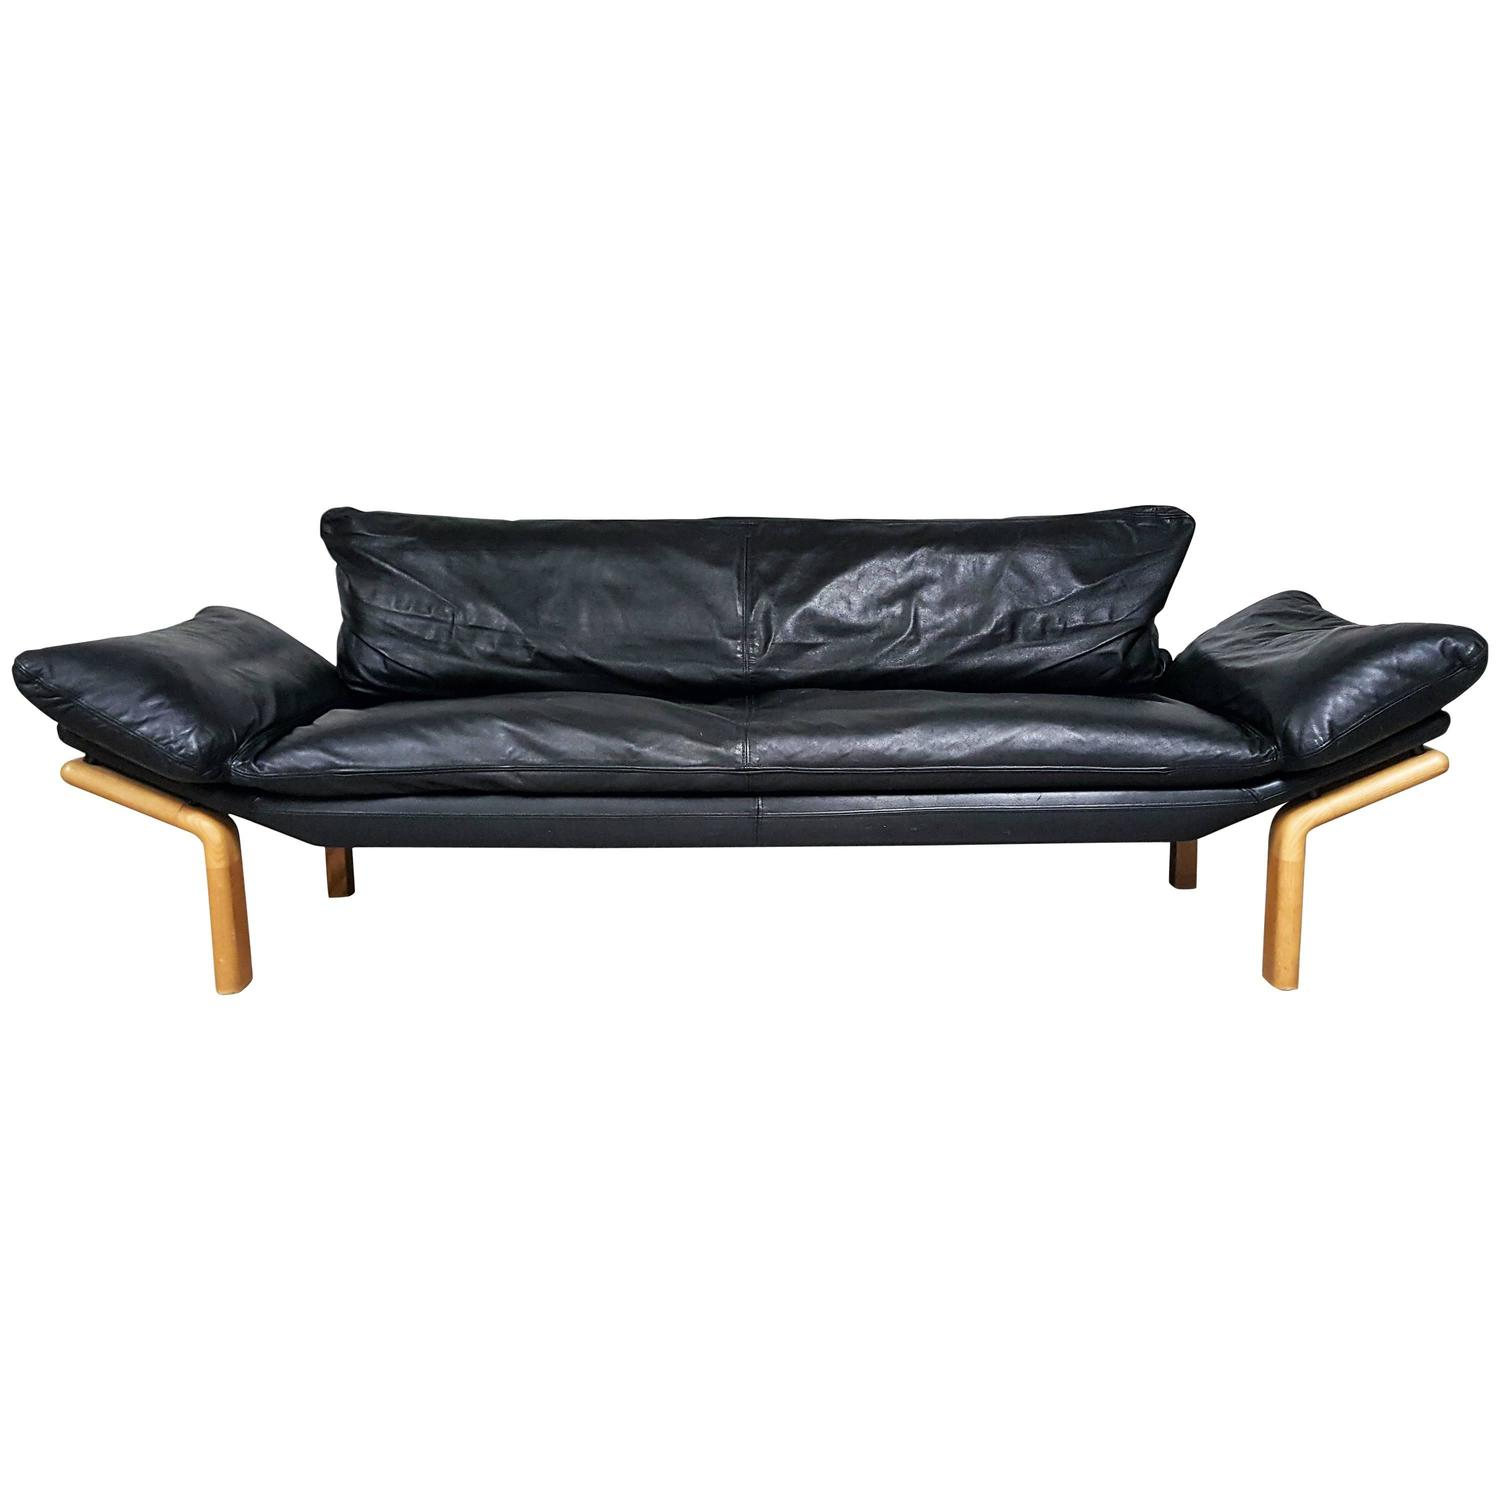 mid century danish modern sofa by komfort in black leather at 1stdibs